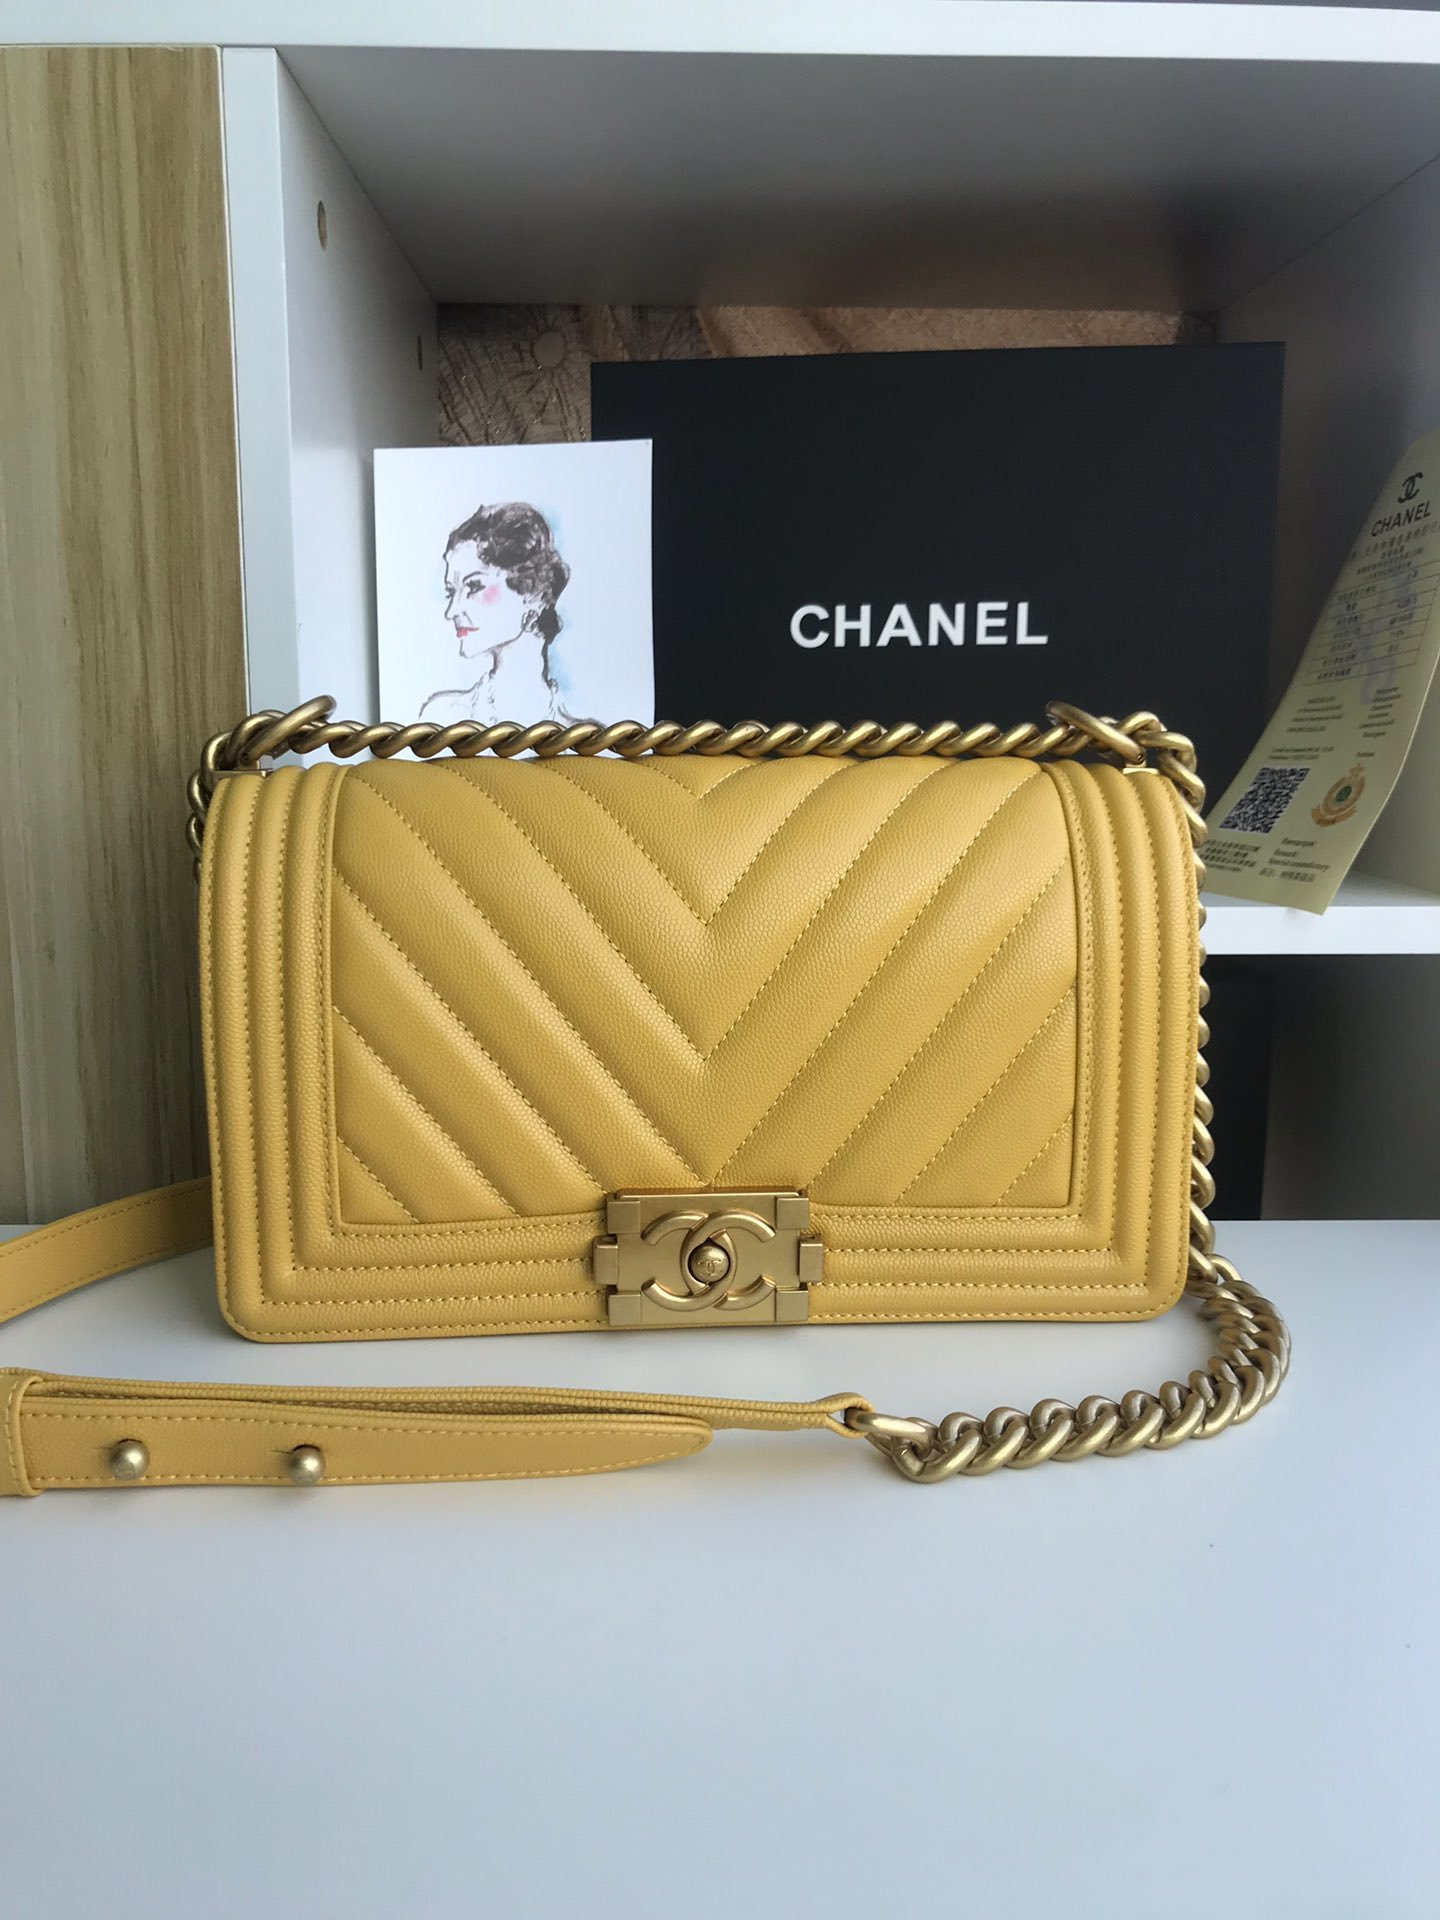 Replica 25cm V Boy Chanel Handbag Yellow Grained Calfskin Gold Tone Metal